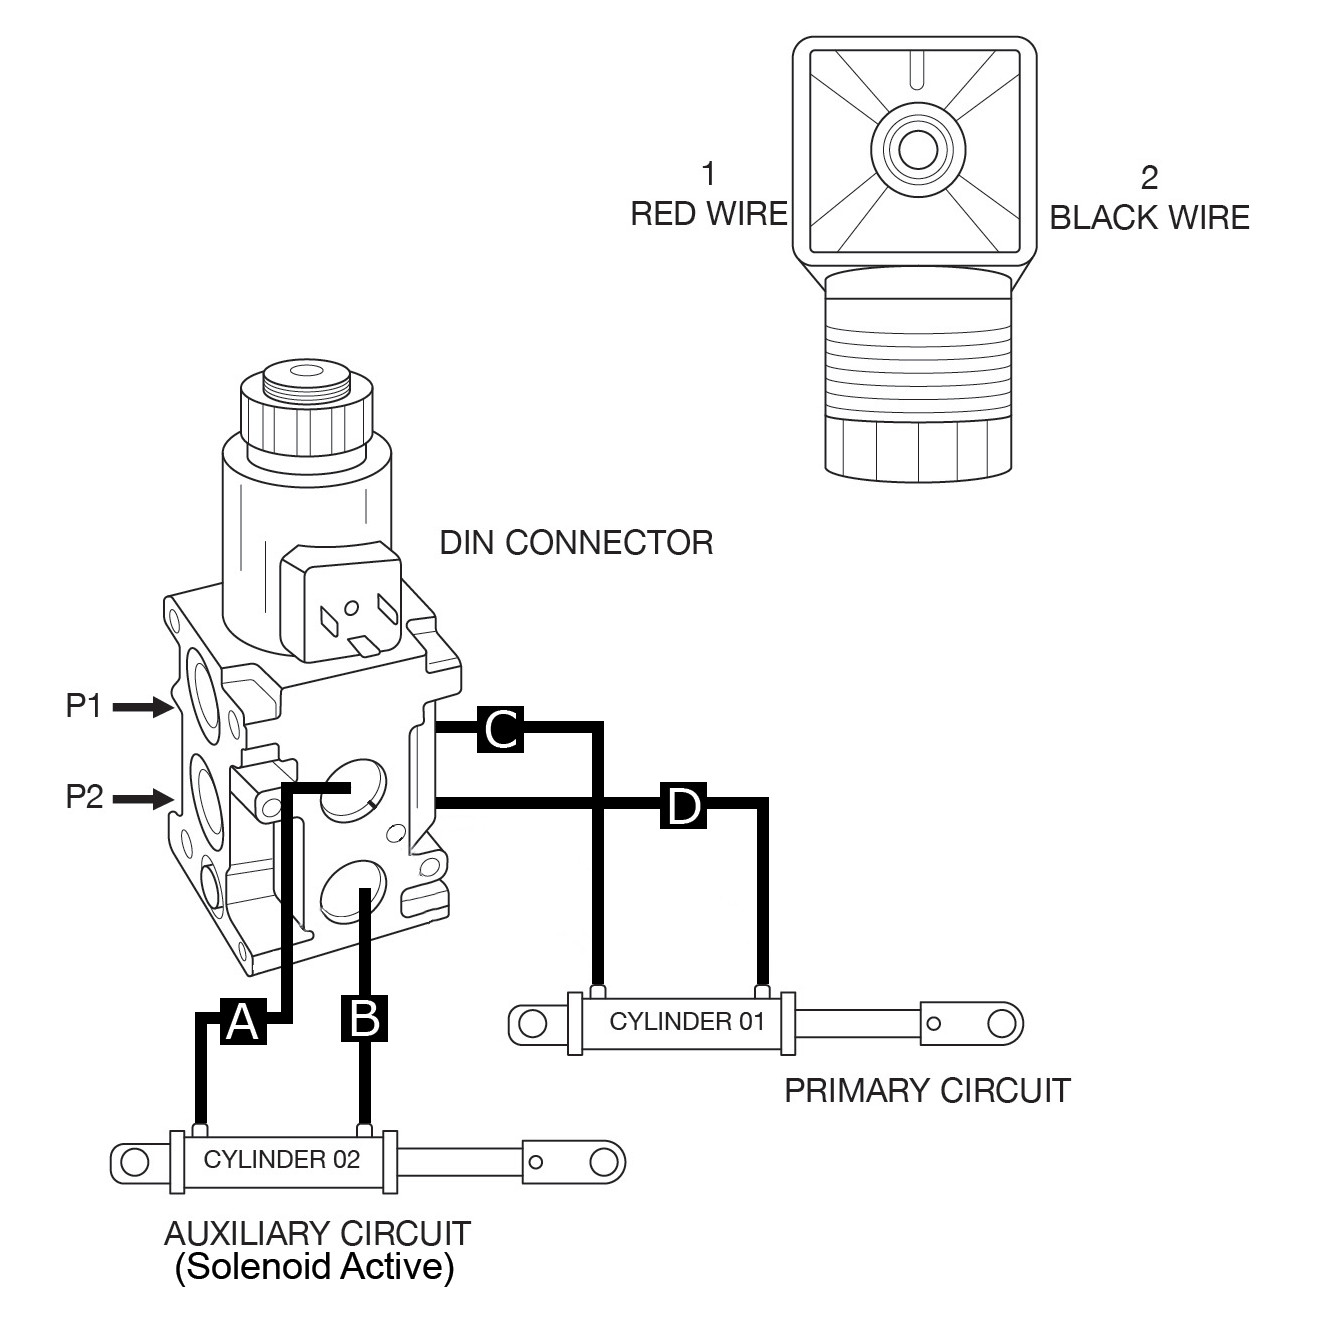 Hydraulic Diverter Selector Valve for John Deere Subcompact Tractors | Hydraulic Control Wiring Diagram |  | Summit Hydraulics